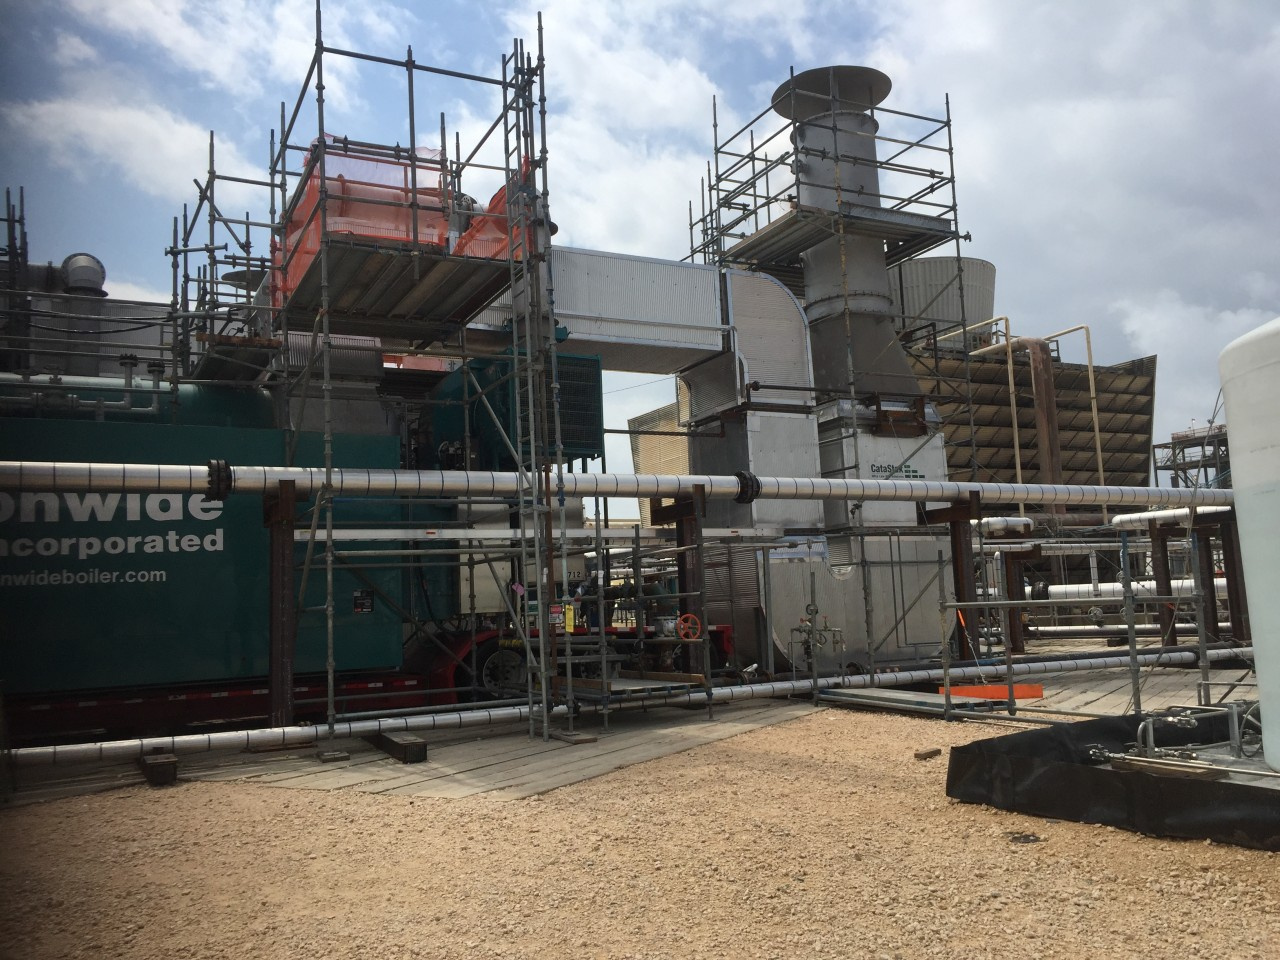 75,000pph Boiler with Urea-Based SCR System for Ultra Low NOx